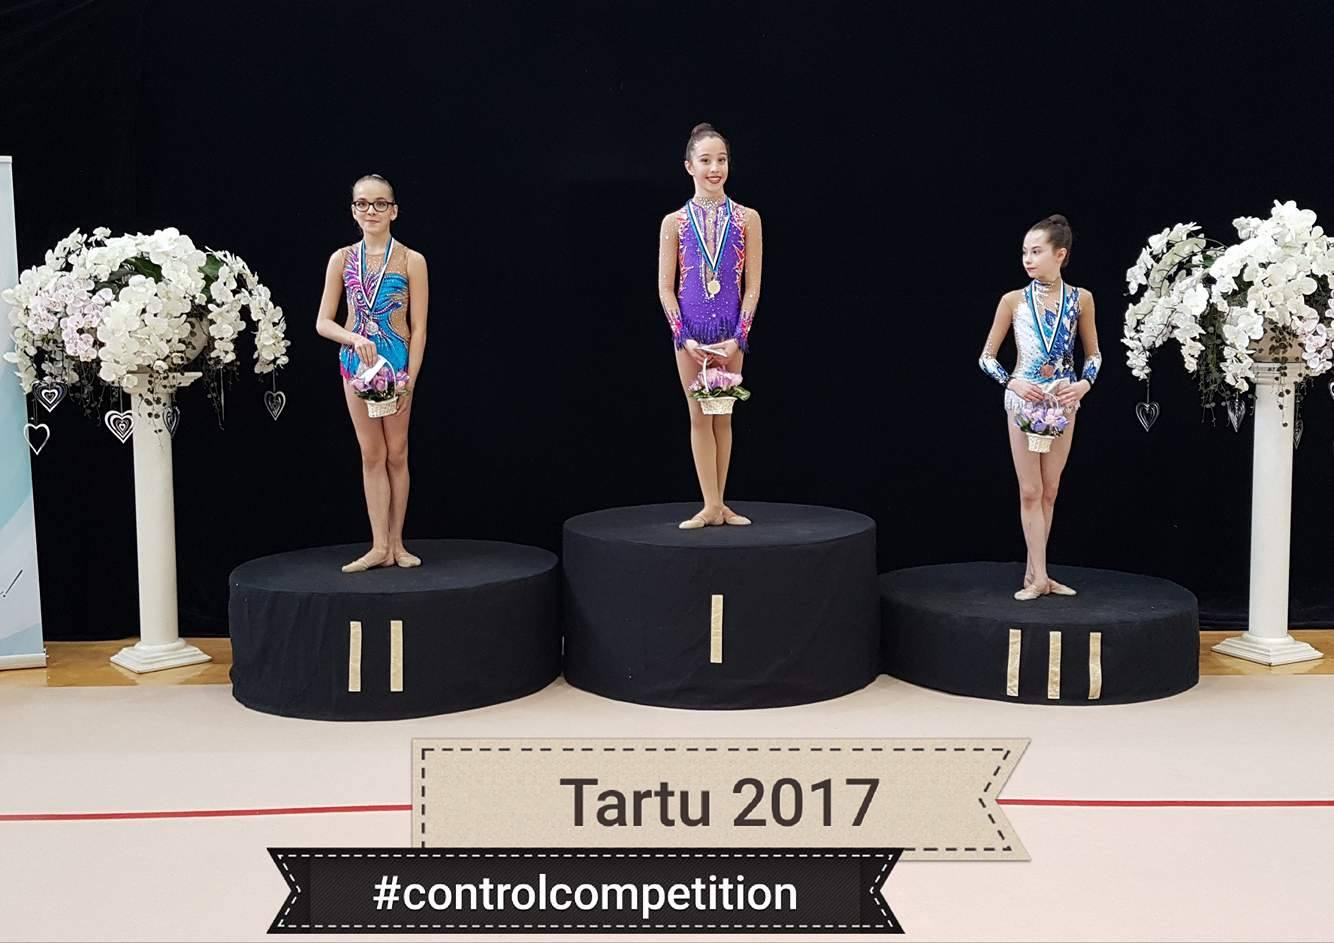 Kalev Estienne novice Sianna Tsakiridis is participating at RG Camp in Estonia, Tartu. Today she got first place at control competition in Tartu. The best score was given for free routine (11,65). Next weekend all our girls will compete at Eastern Regionals in Toronto! #kalevestienne  #canada  #estonia  #camp  #controlcompetition